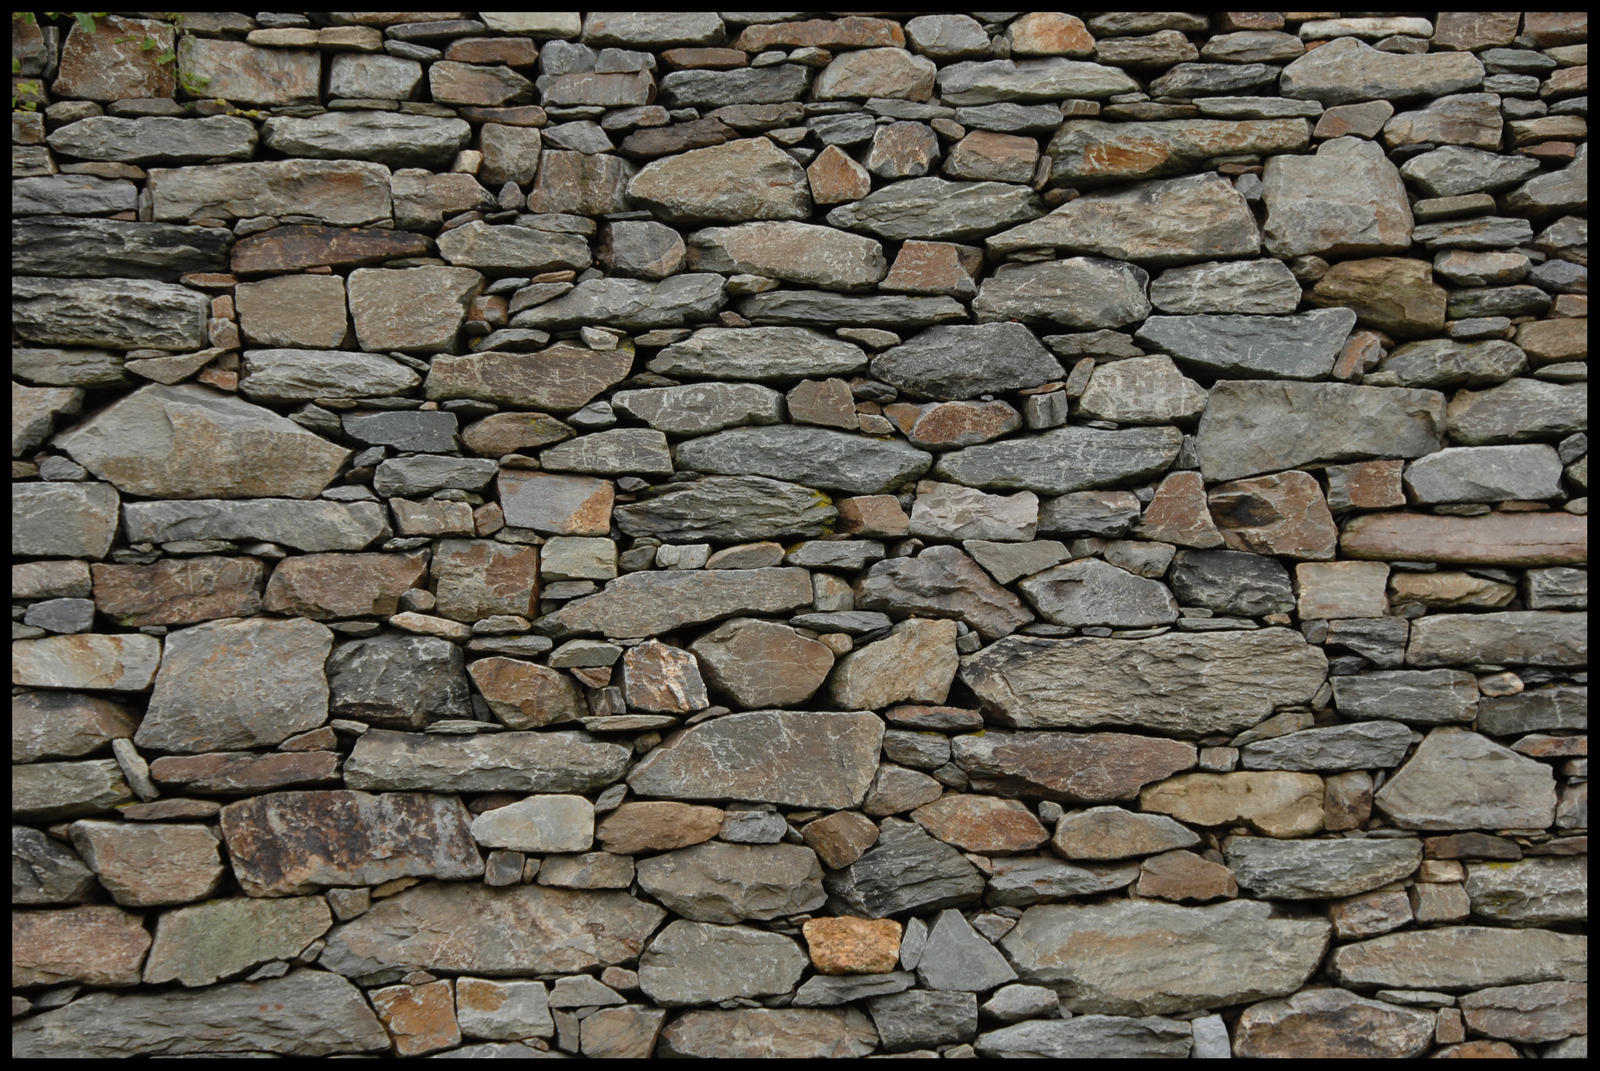 Castle Wall Mural Old Stone Wall 2 Harpers Ferry By Chriswellner On Deviantart